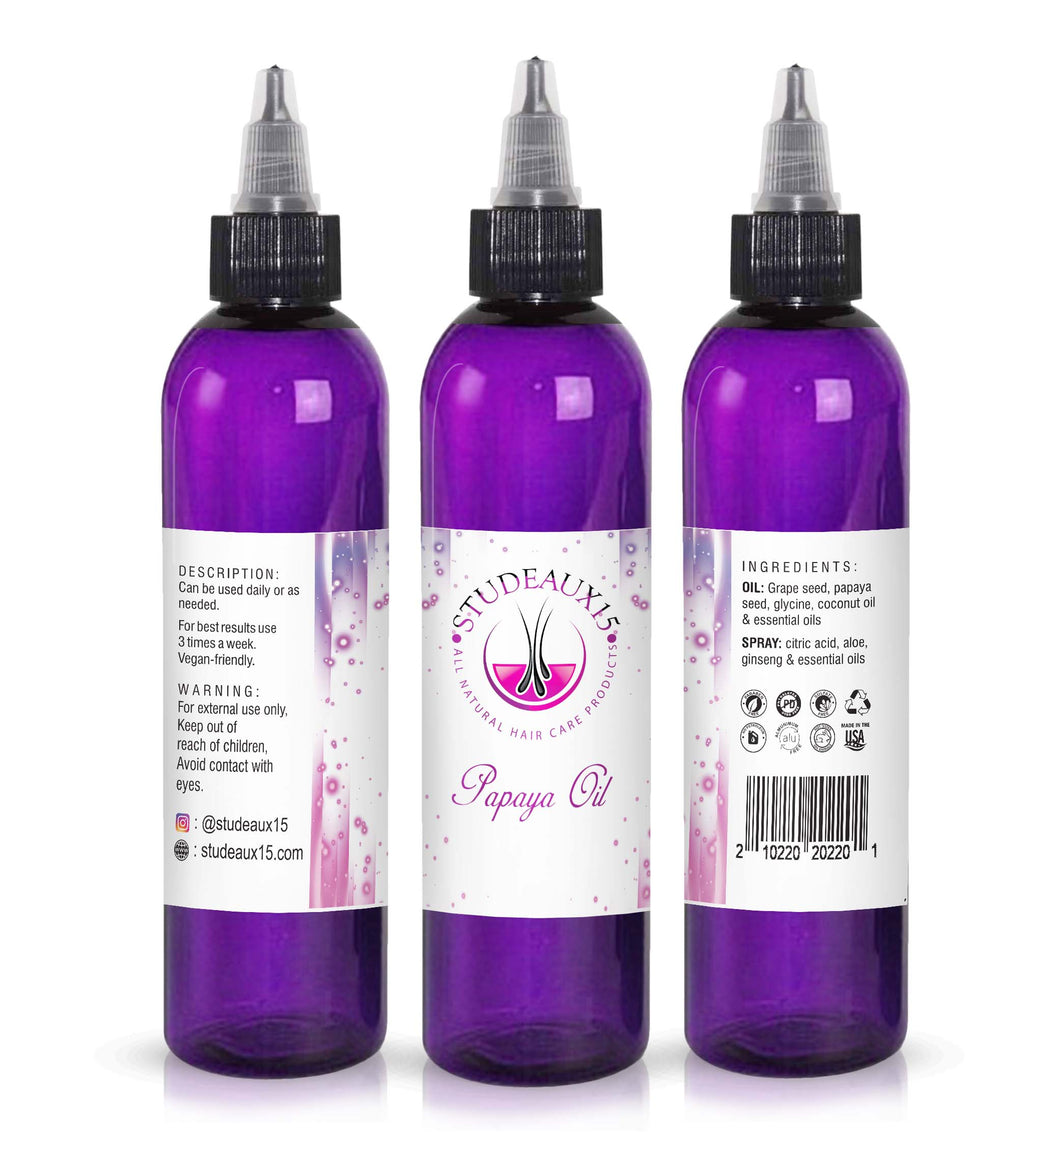 Papaya Hair Growth Oil